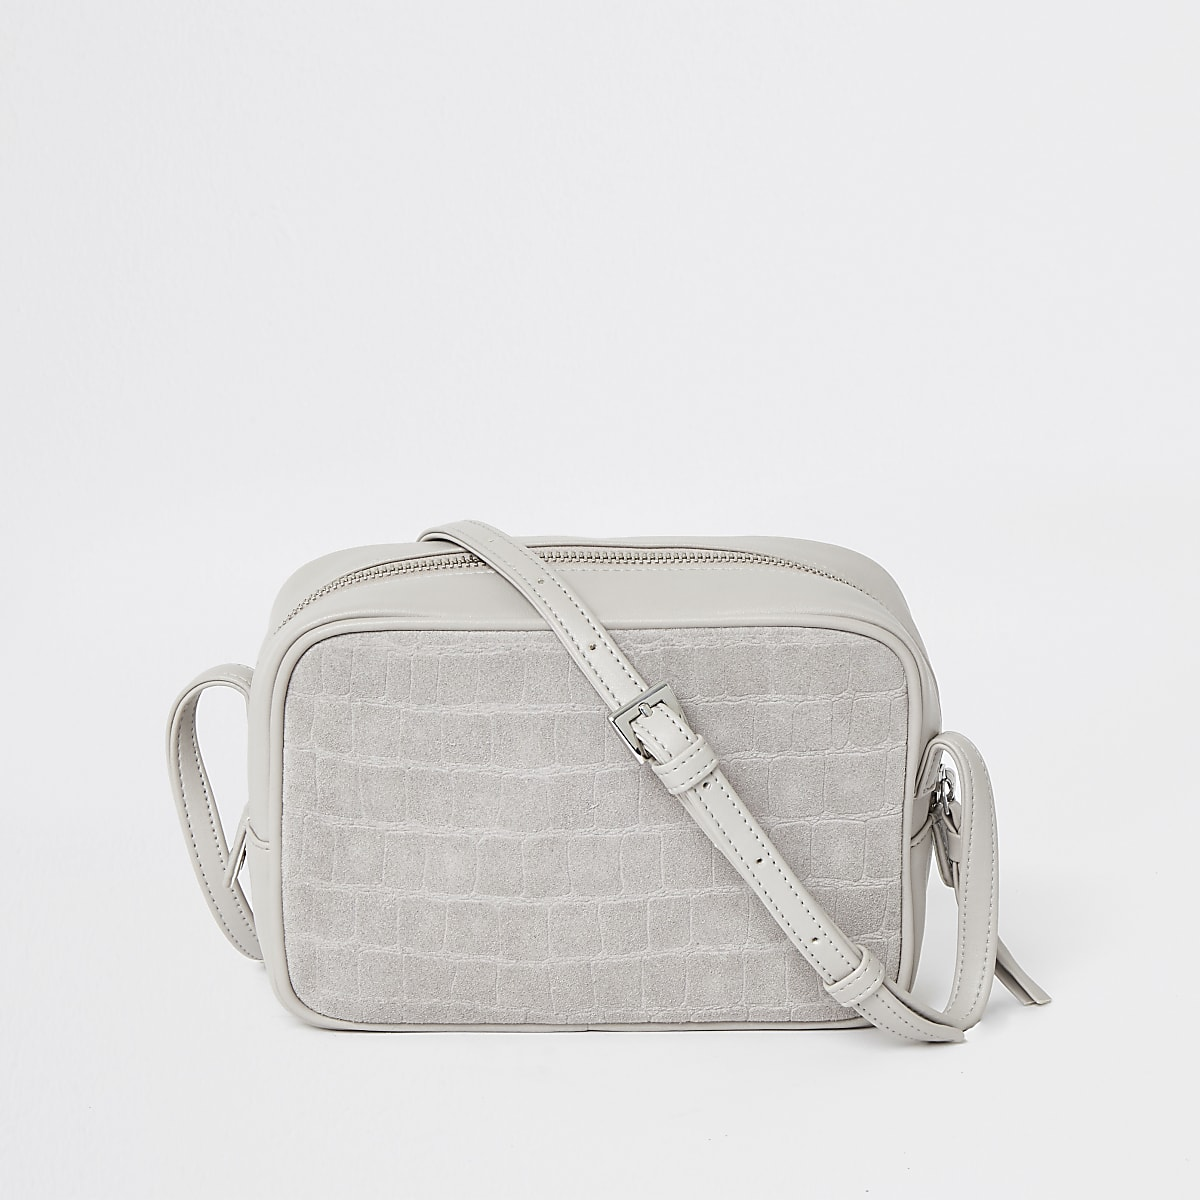 Grey leather croc embossed cross body bag